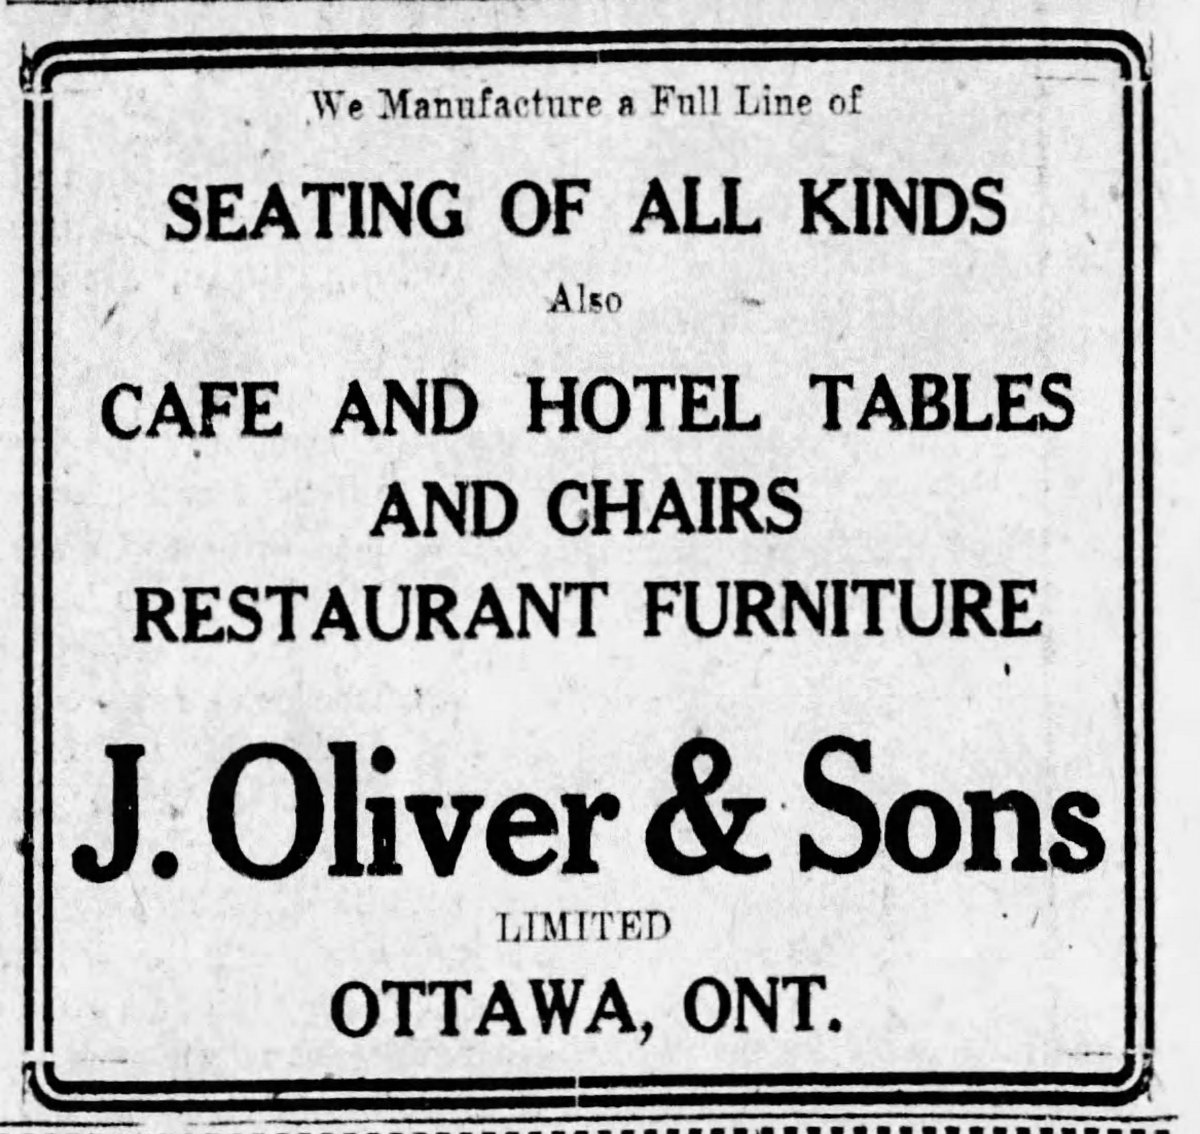 A newspaper ad from the Friday, May 15, 1925 edition of the Ottawa Citizen advertising restaurant furniture.